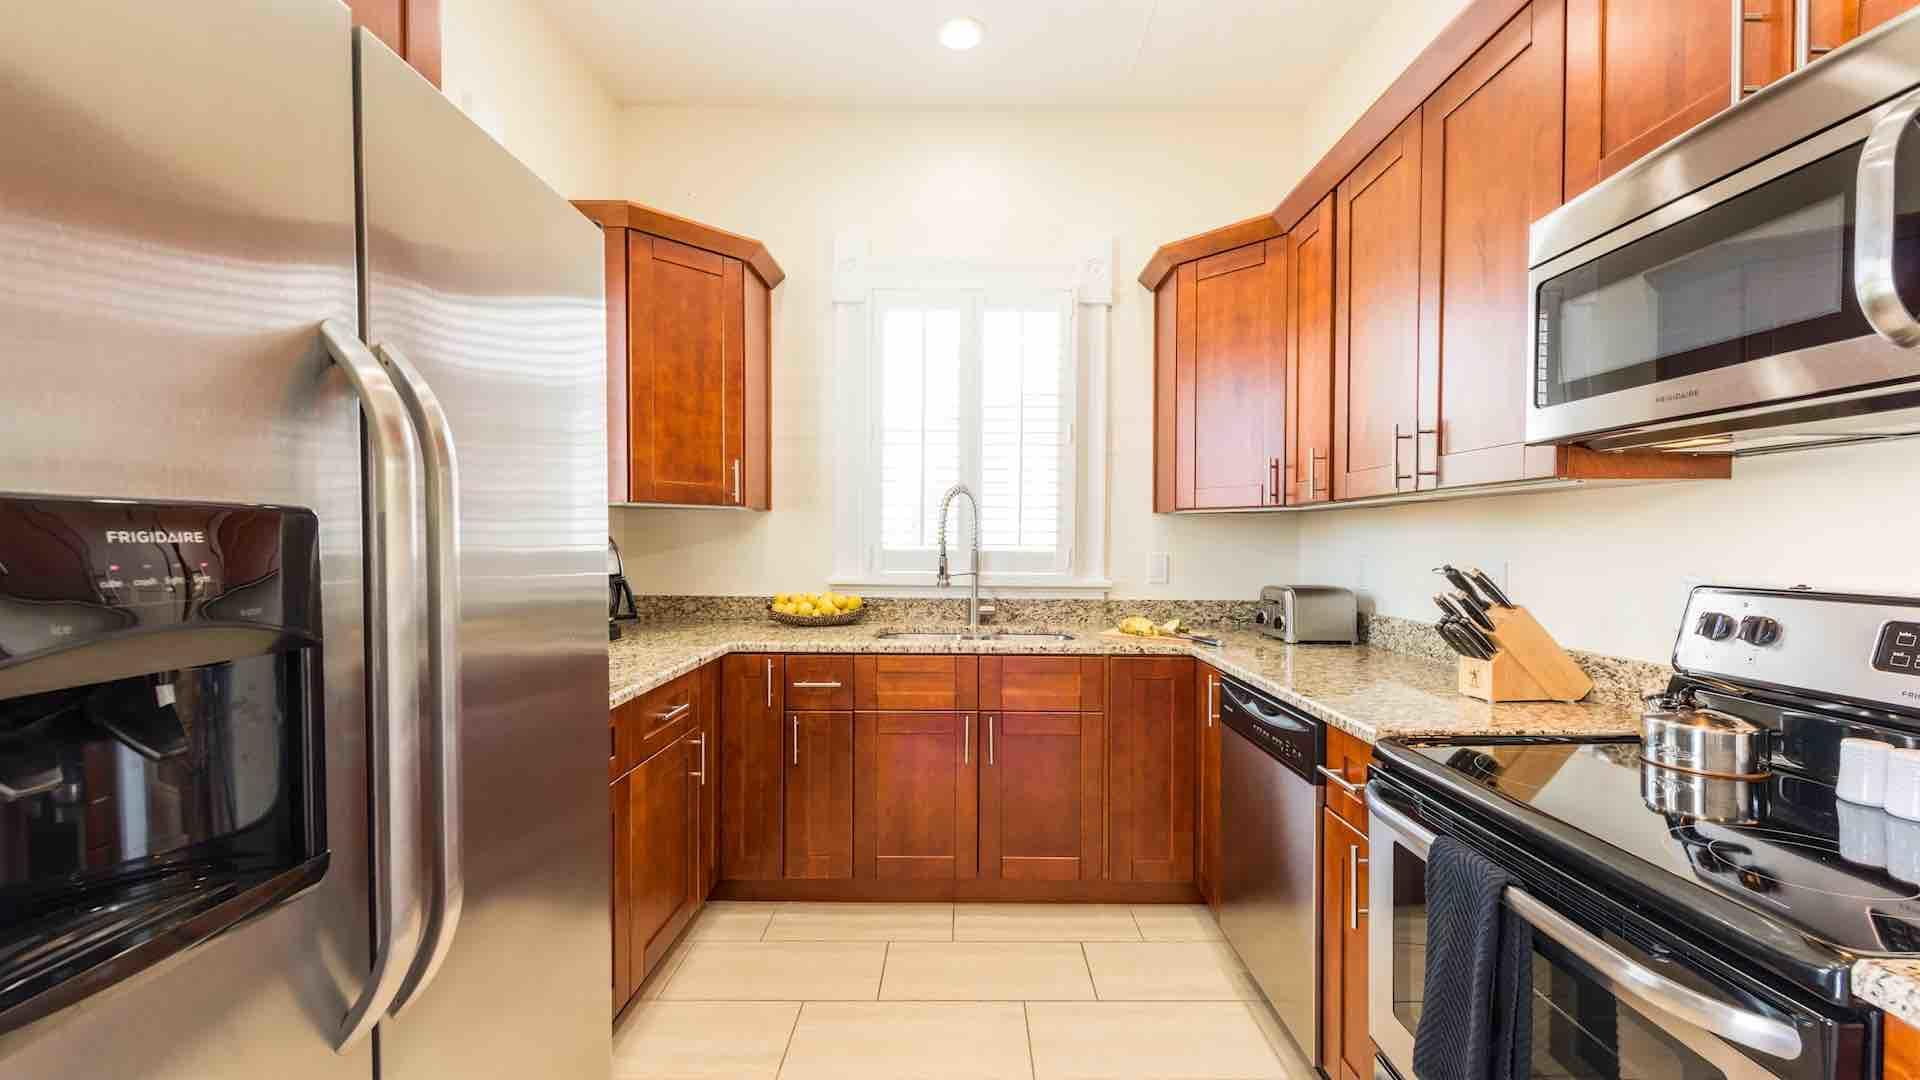 The kitchen has all new stainless steel appliances...